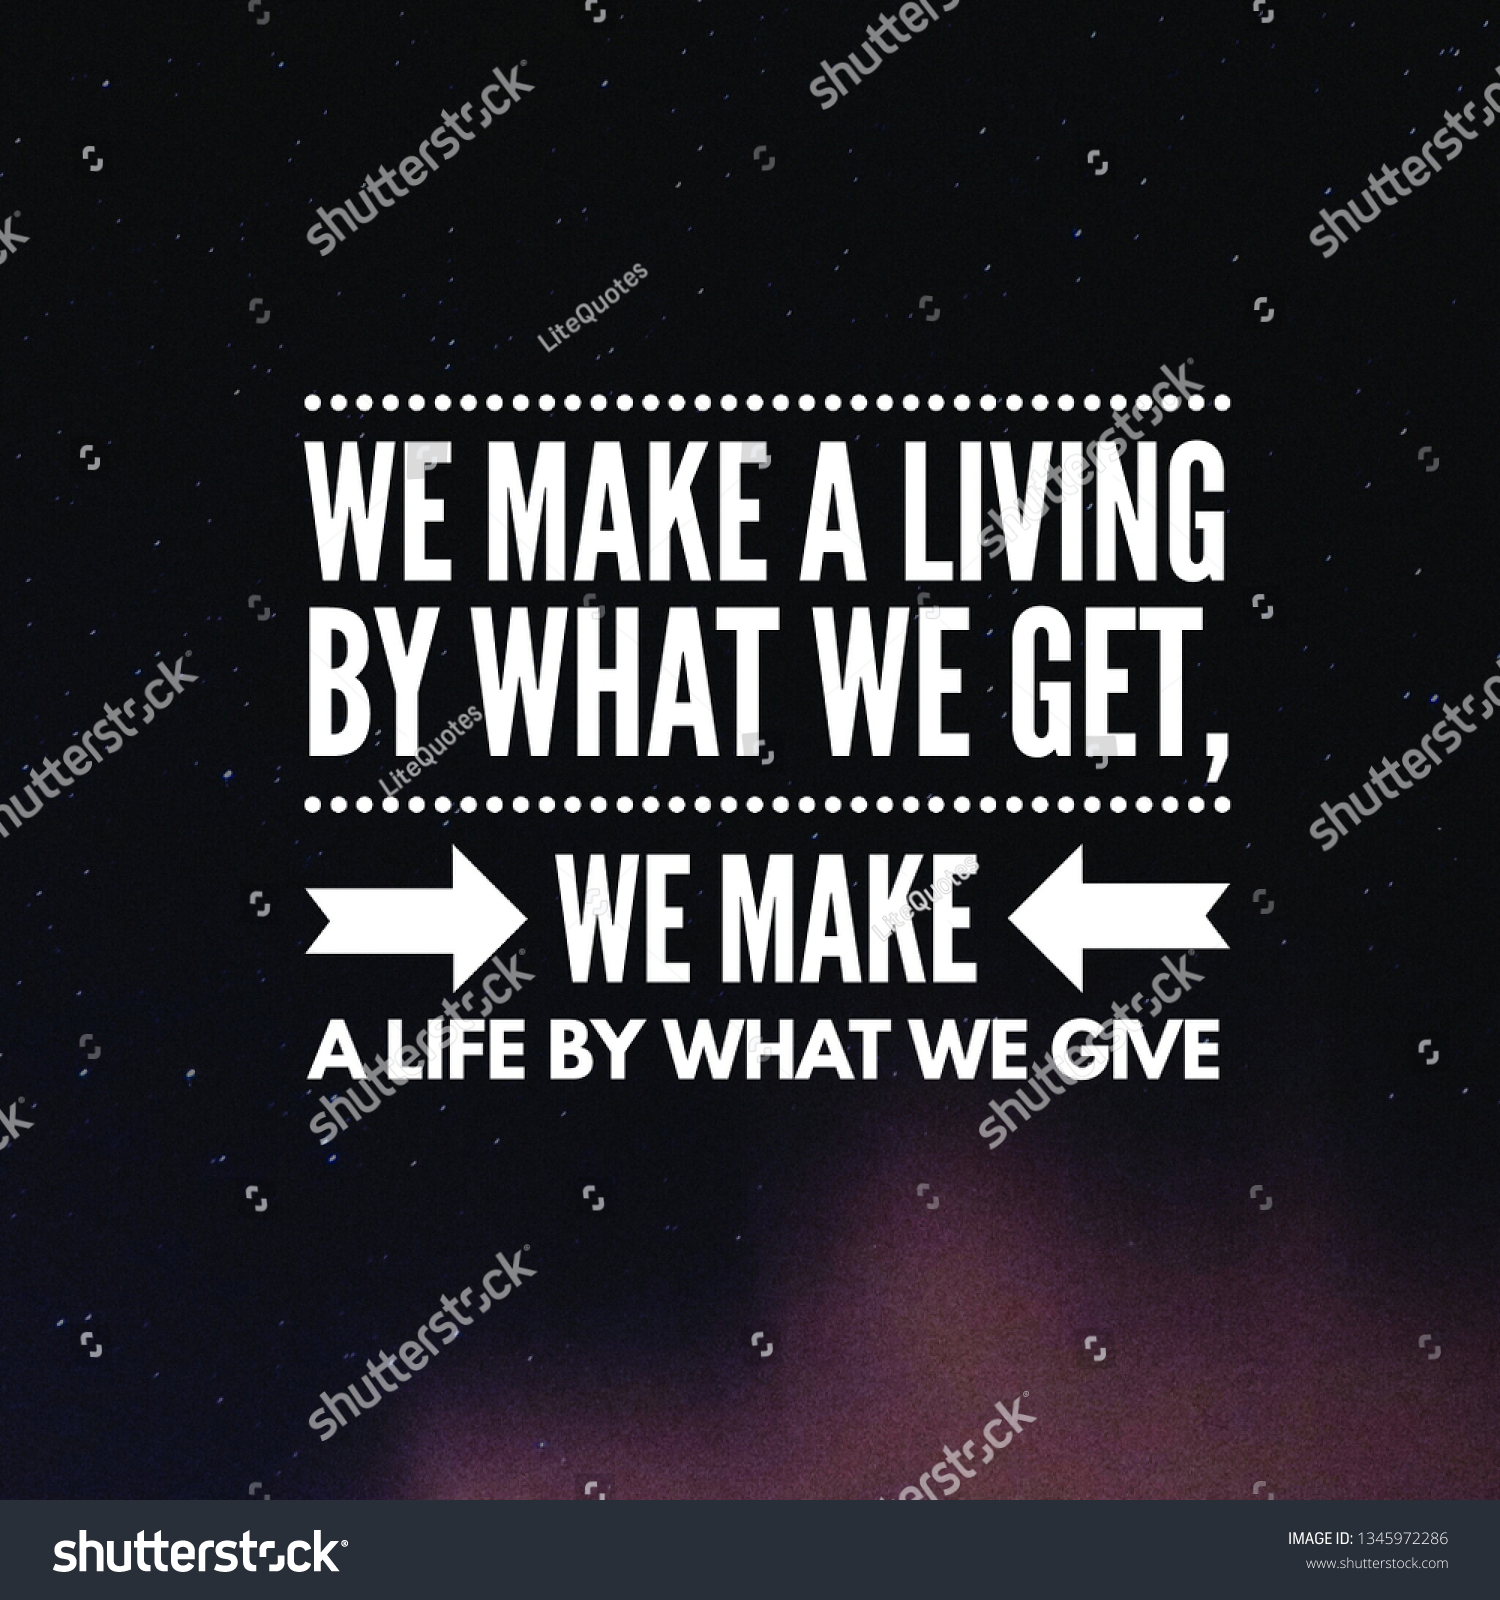 Motivational Quotes Inspirational Quotes Creative Quotes